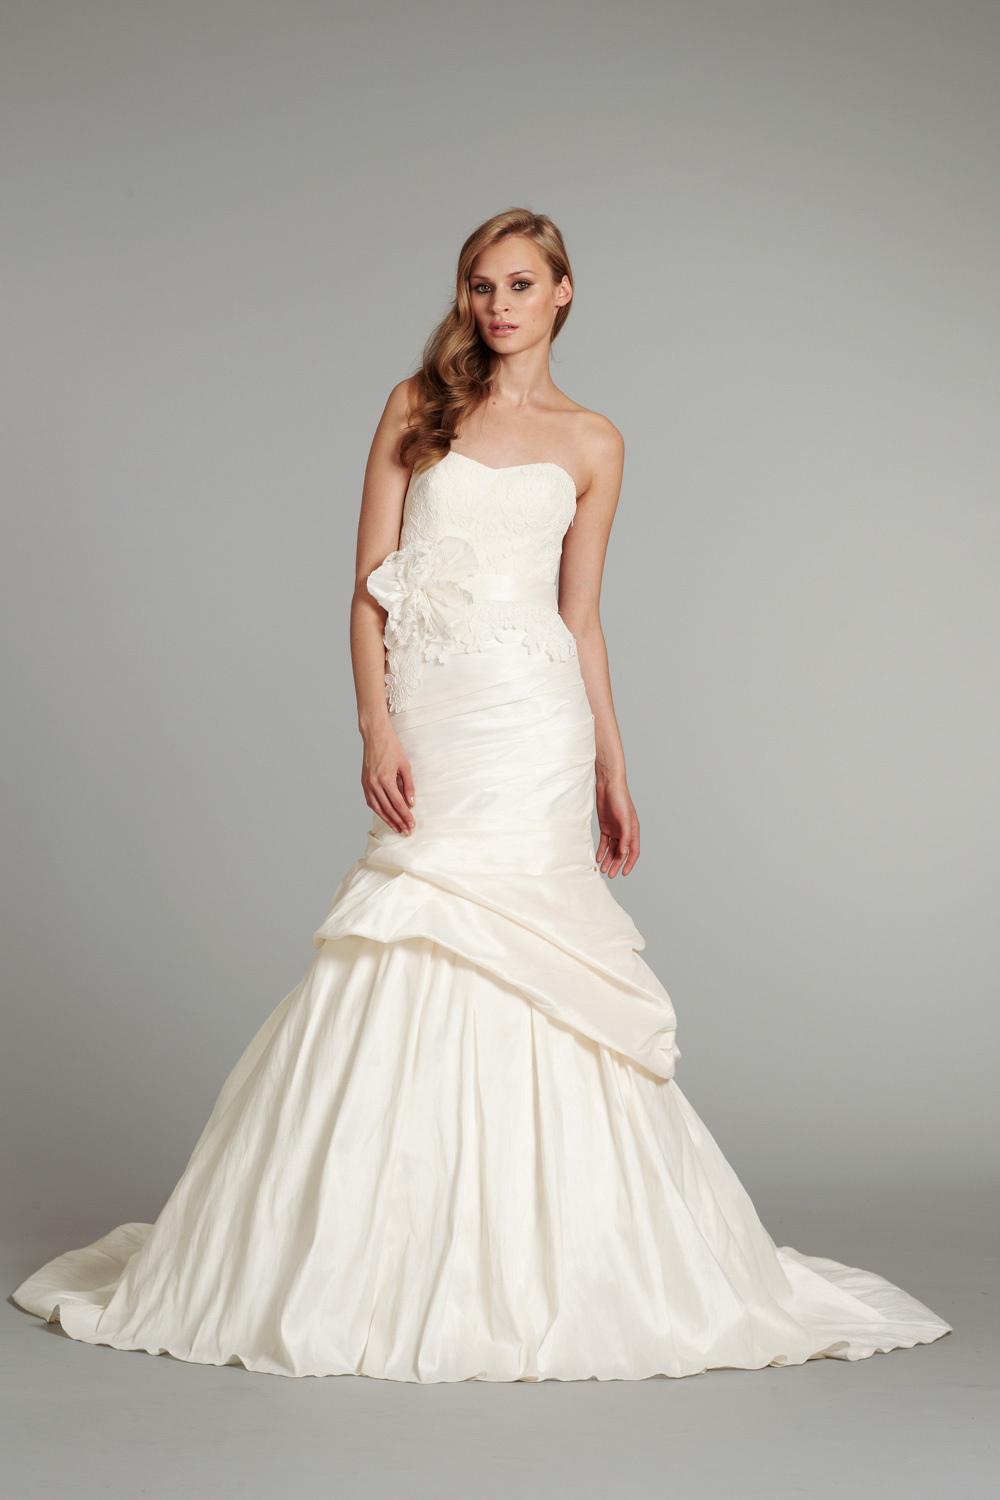 New-bridal-gowns-fall-2012-wedding-dress-hayley-paige-for-jlm-couture-lulu.full